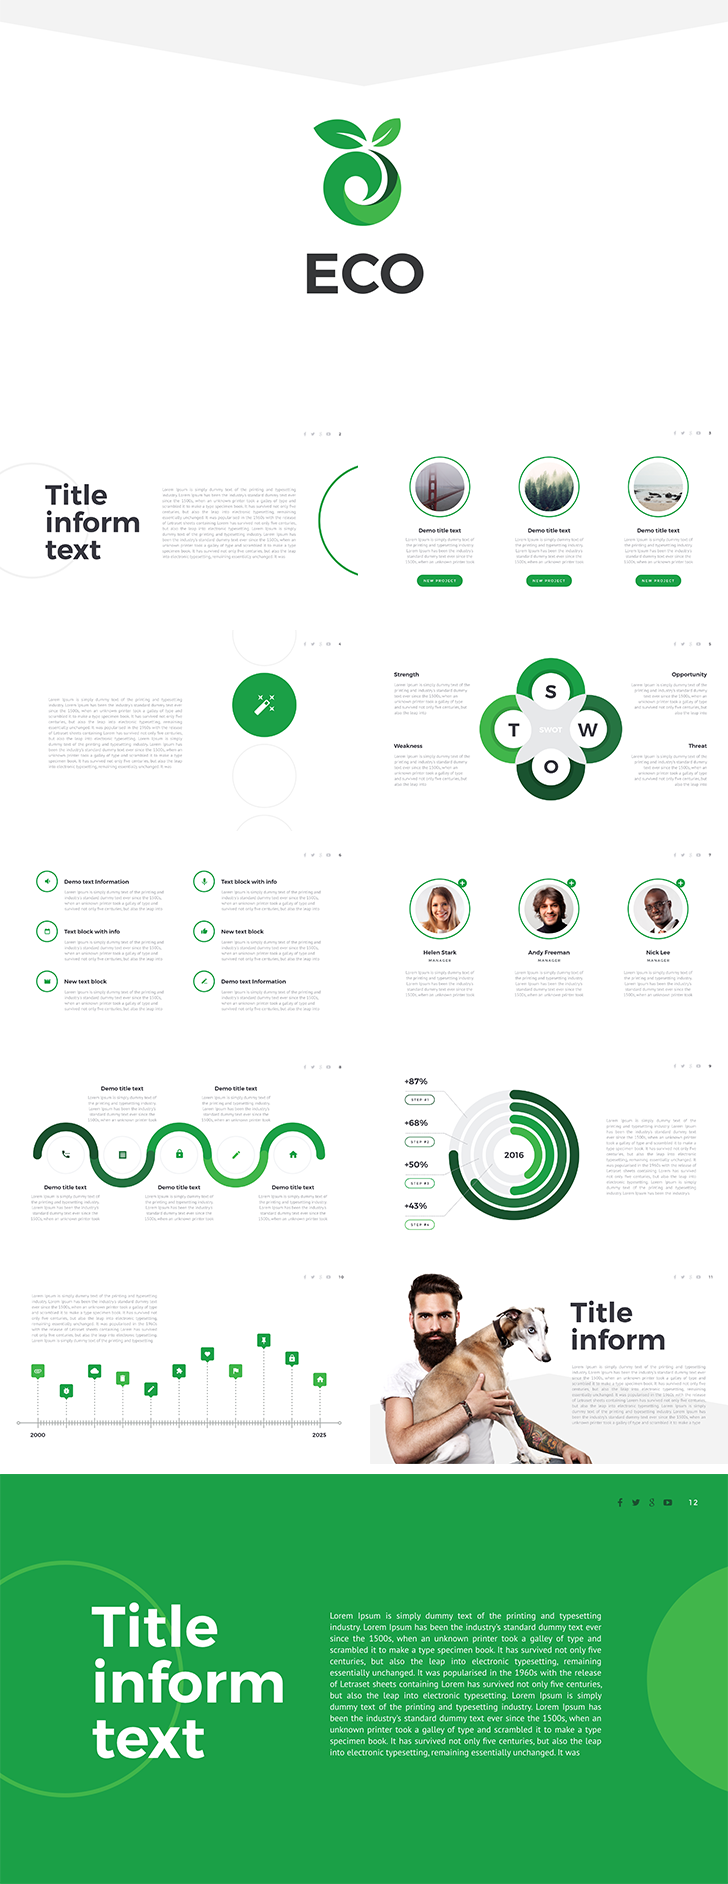 Eco free powerpoint template download free eco free powerpoint template alramifo Images